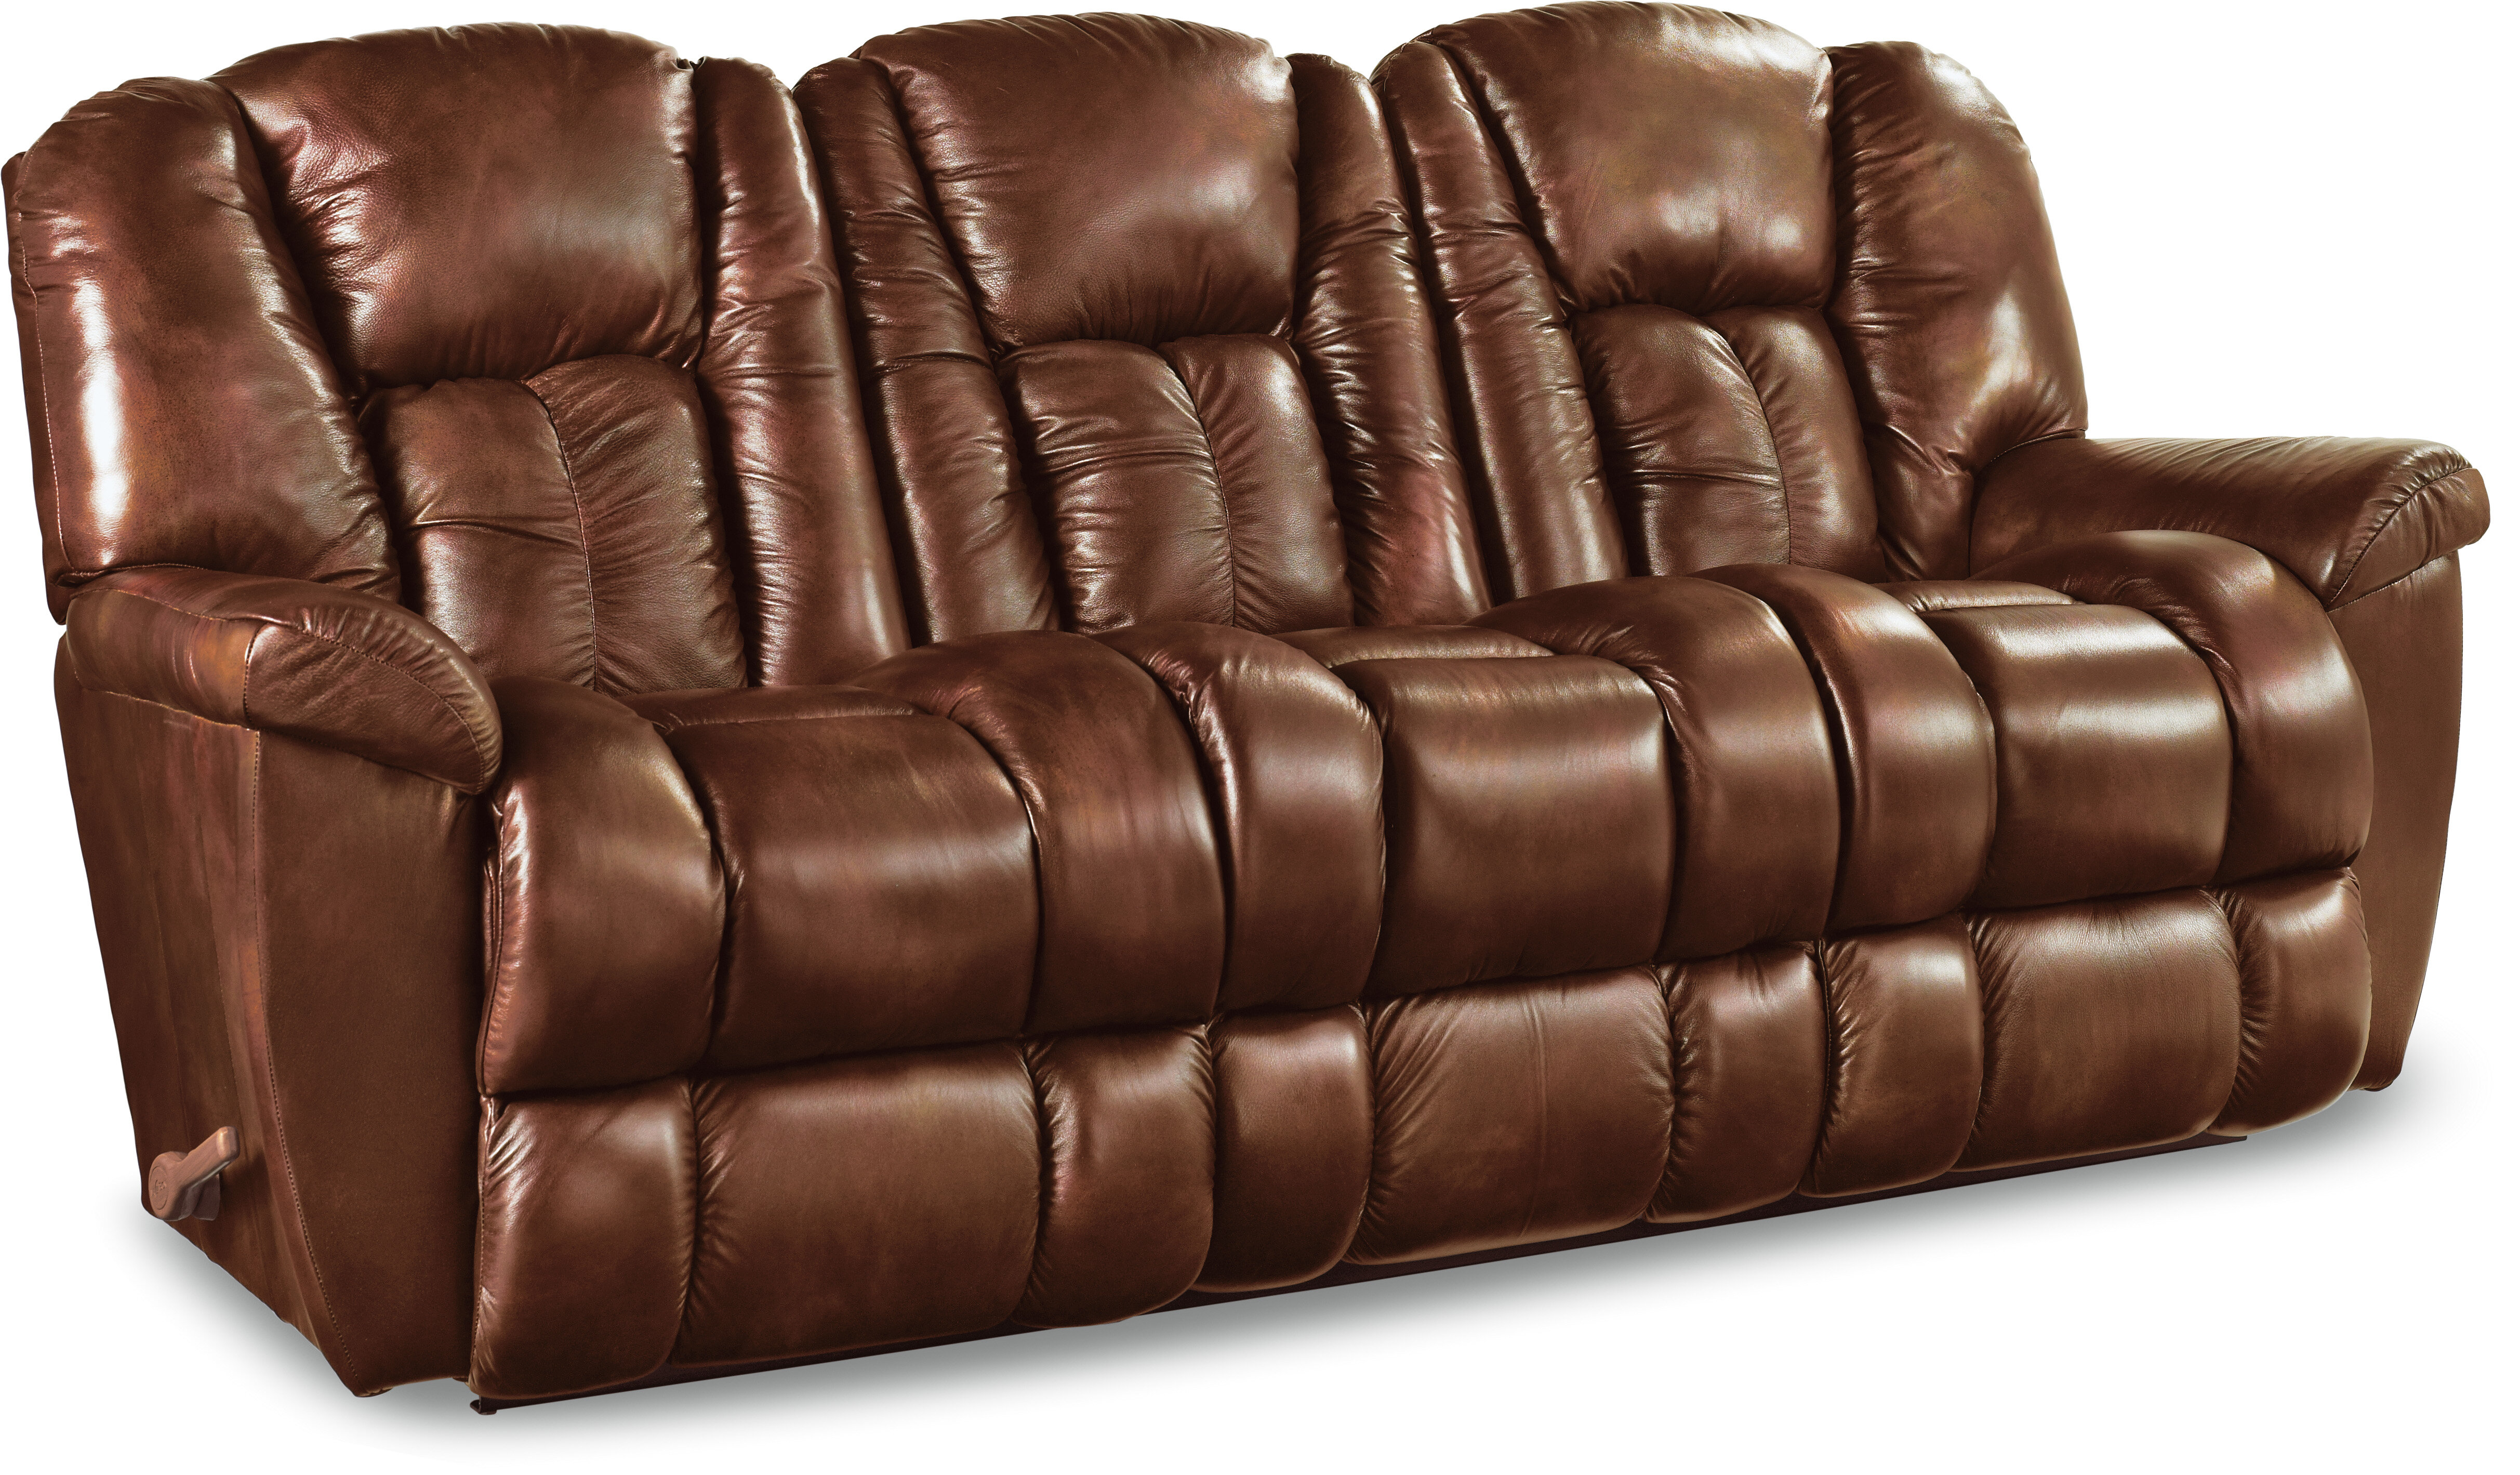 brown sofa montclair cream htl of chair room grain mov black reclining couch sofas center seater set two large recliner leather top living terranova loveseat new with armchair and size